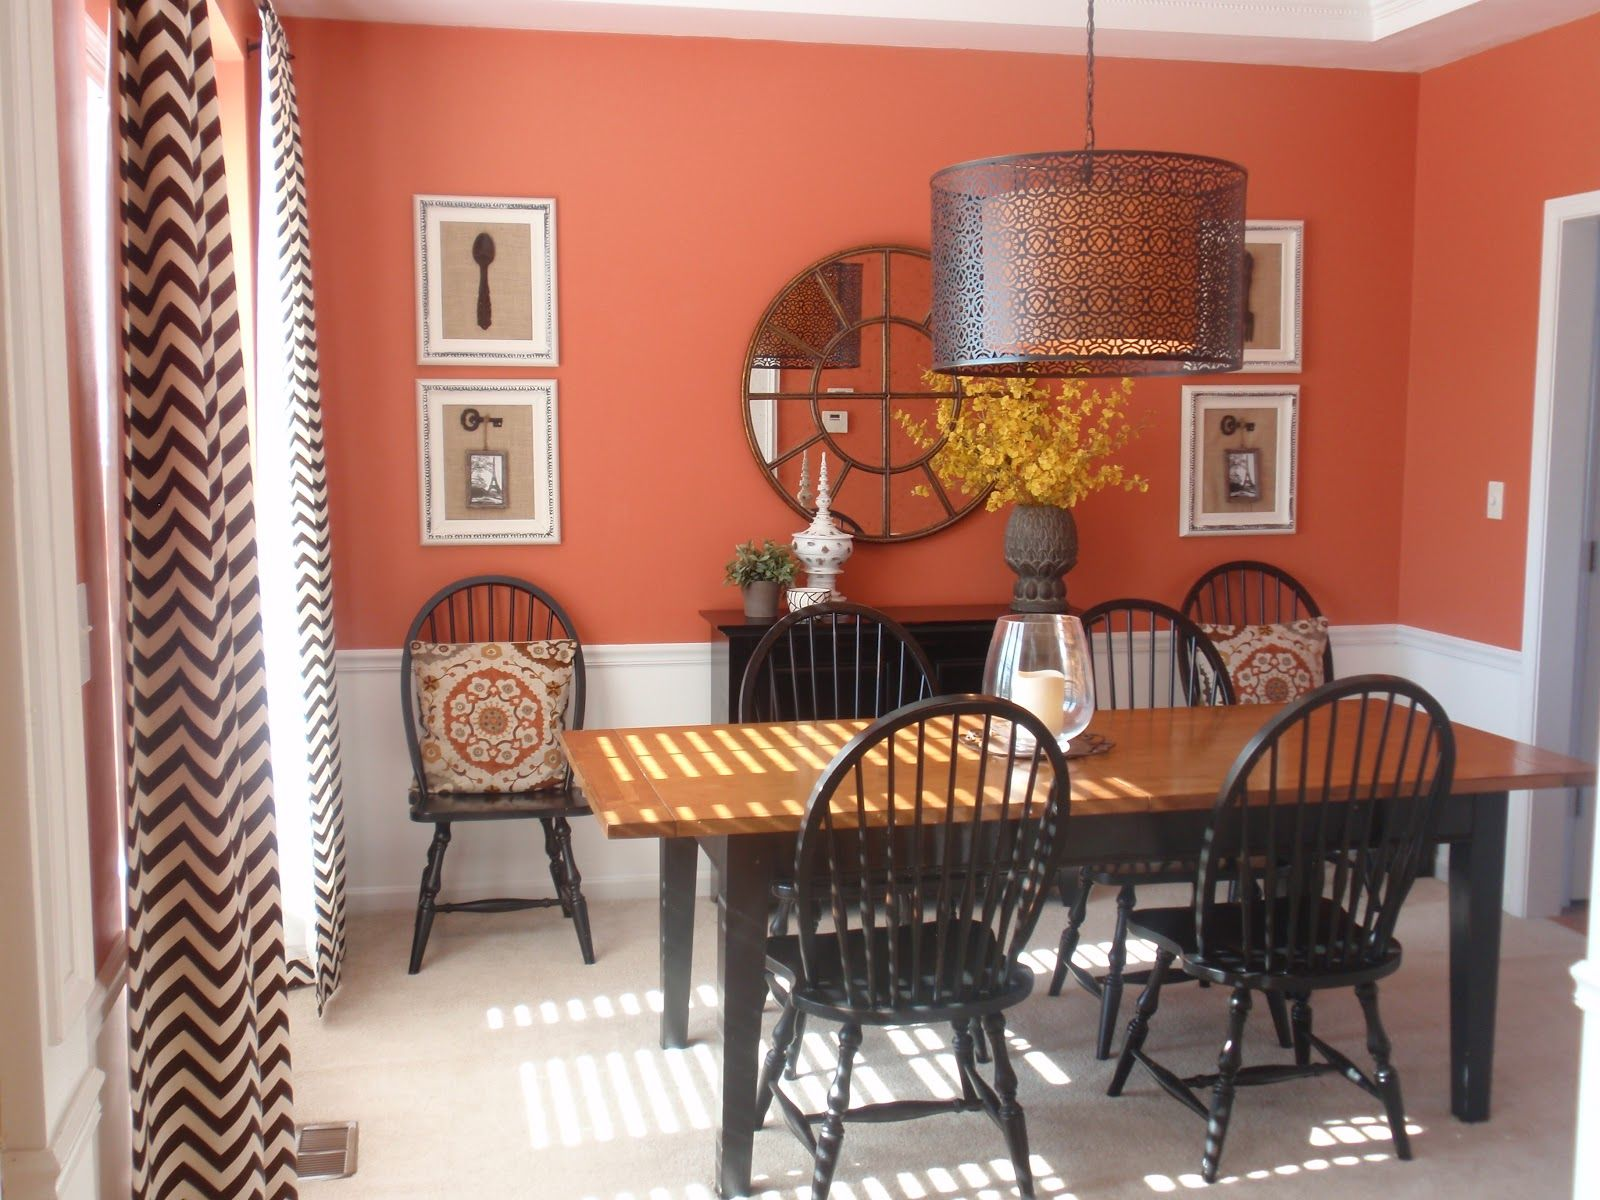 Red Dining Room Appetisingly Colorful Terracottapaintedwall Pleasing Red Dining Room Curtains Inspiration Design